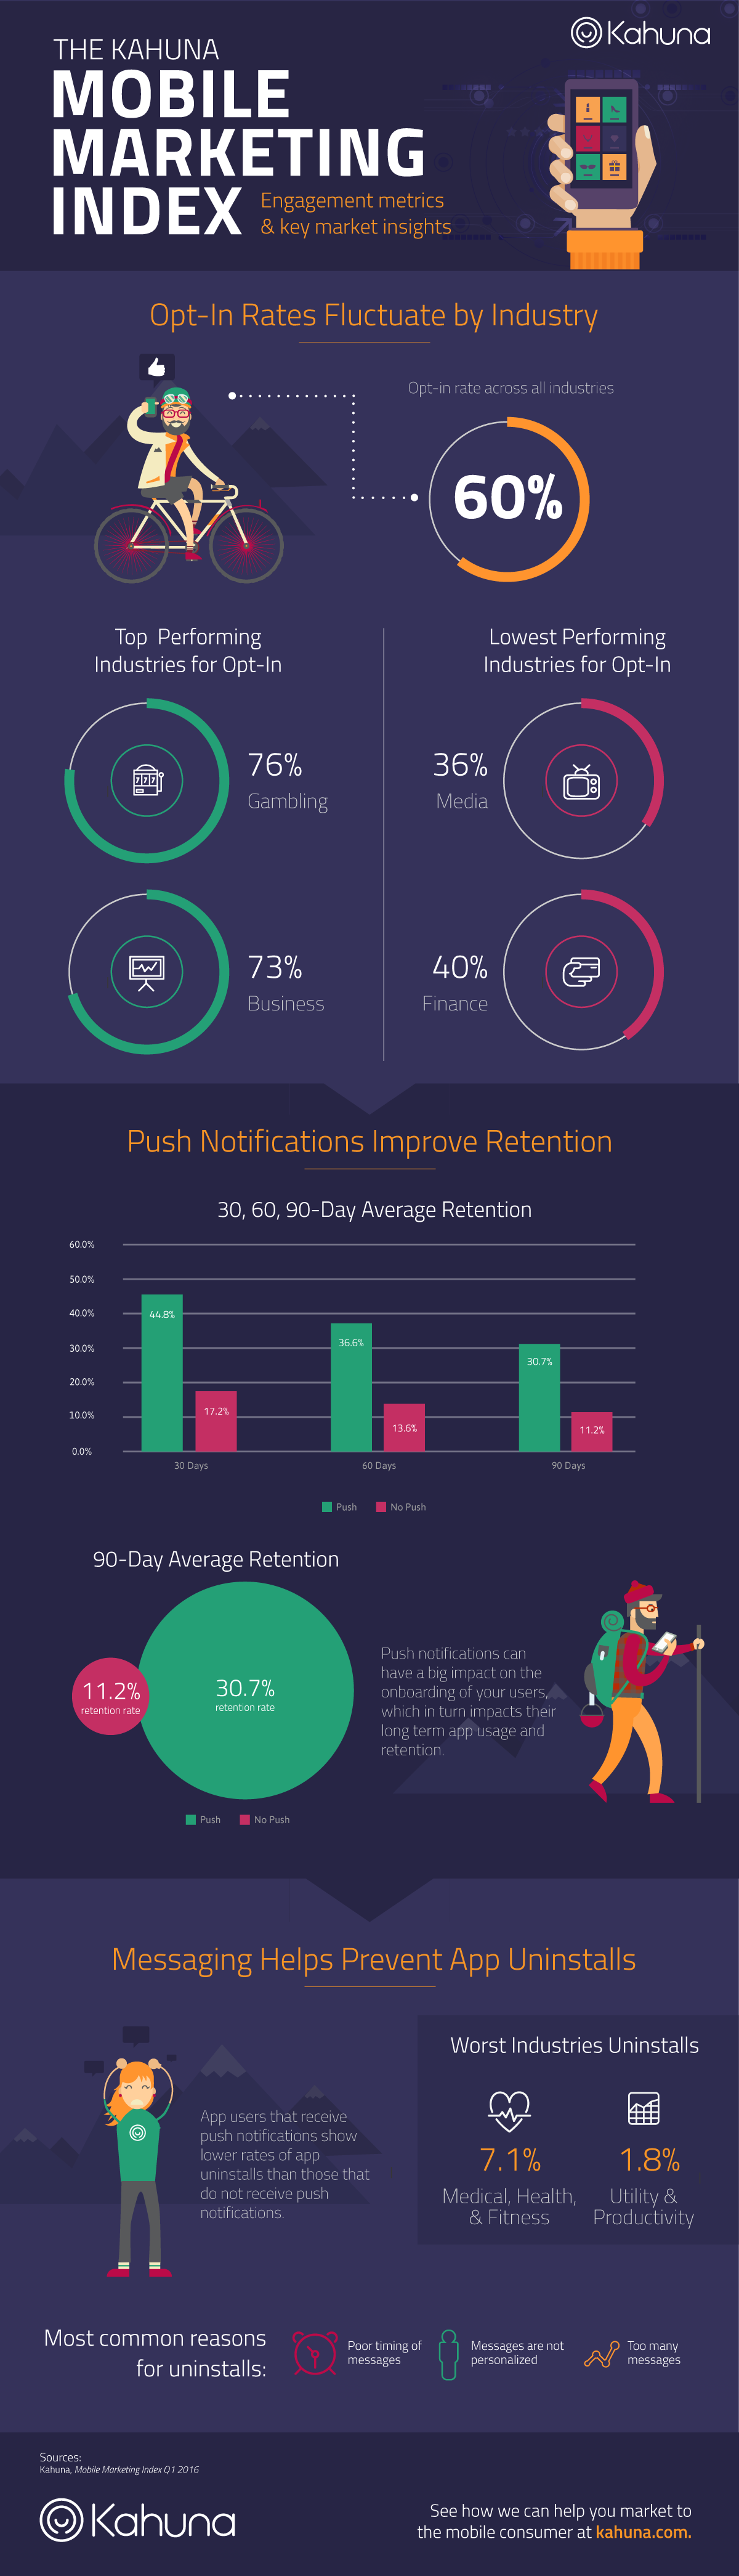 Infographic: Why Personalized Mobile Marketing Has 3X Results